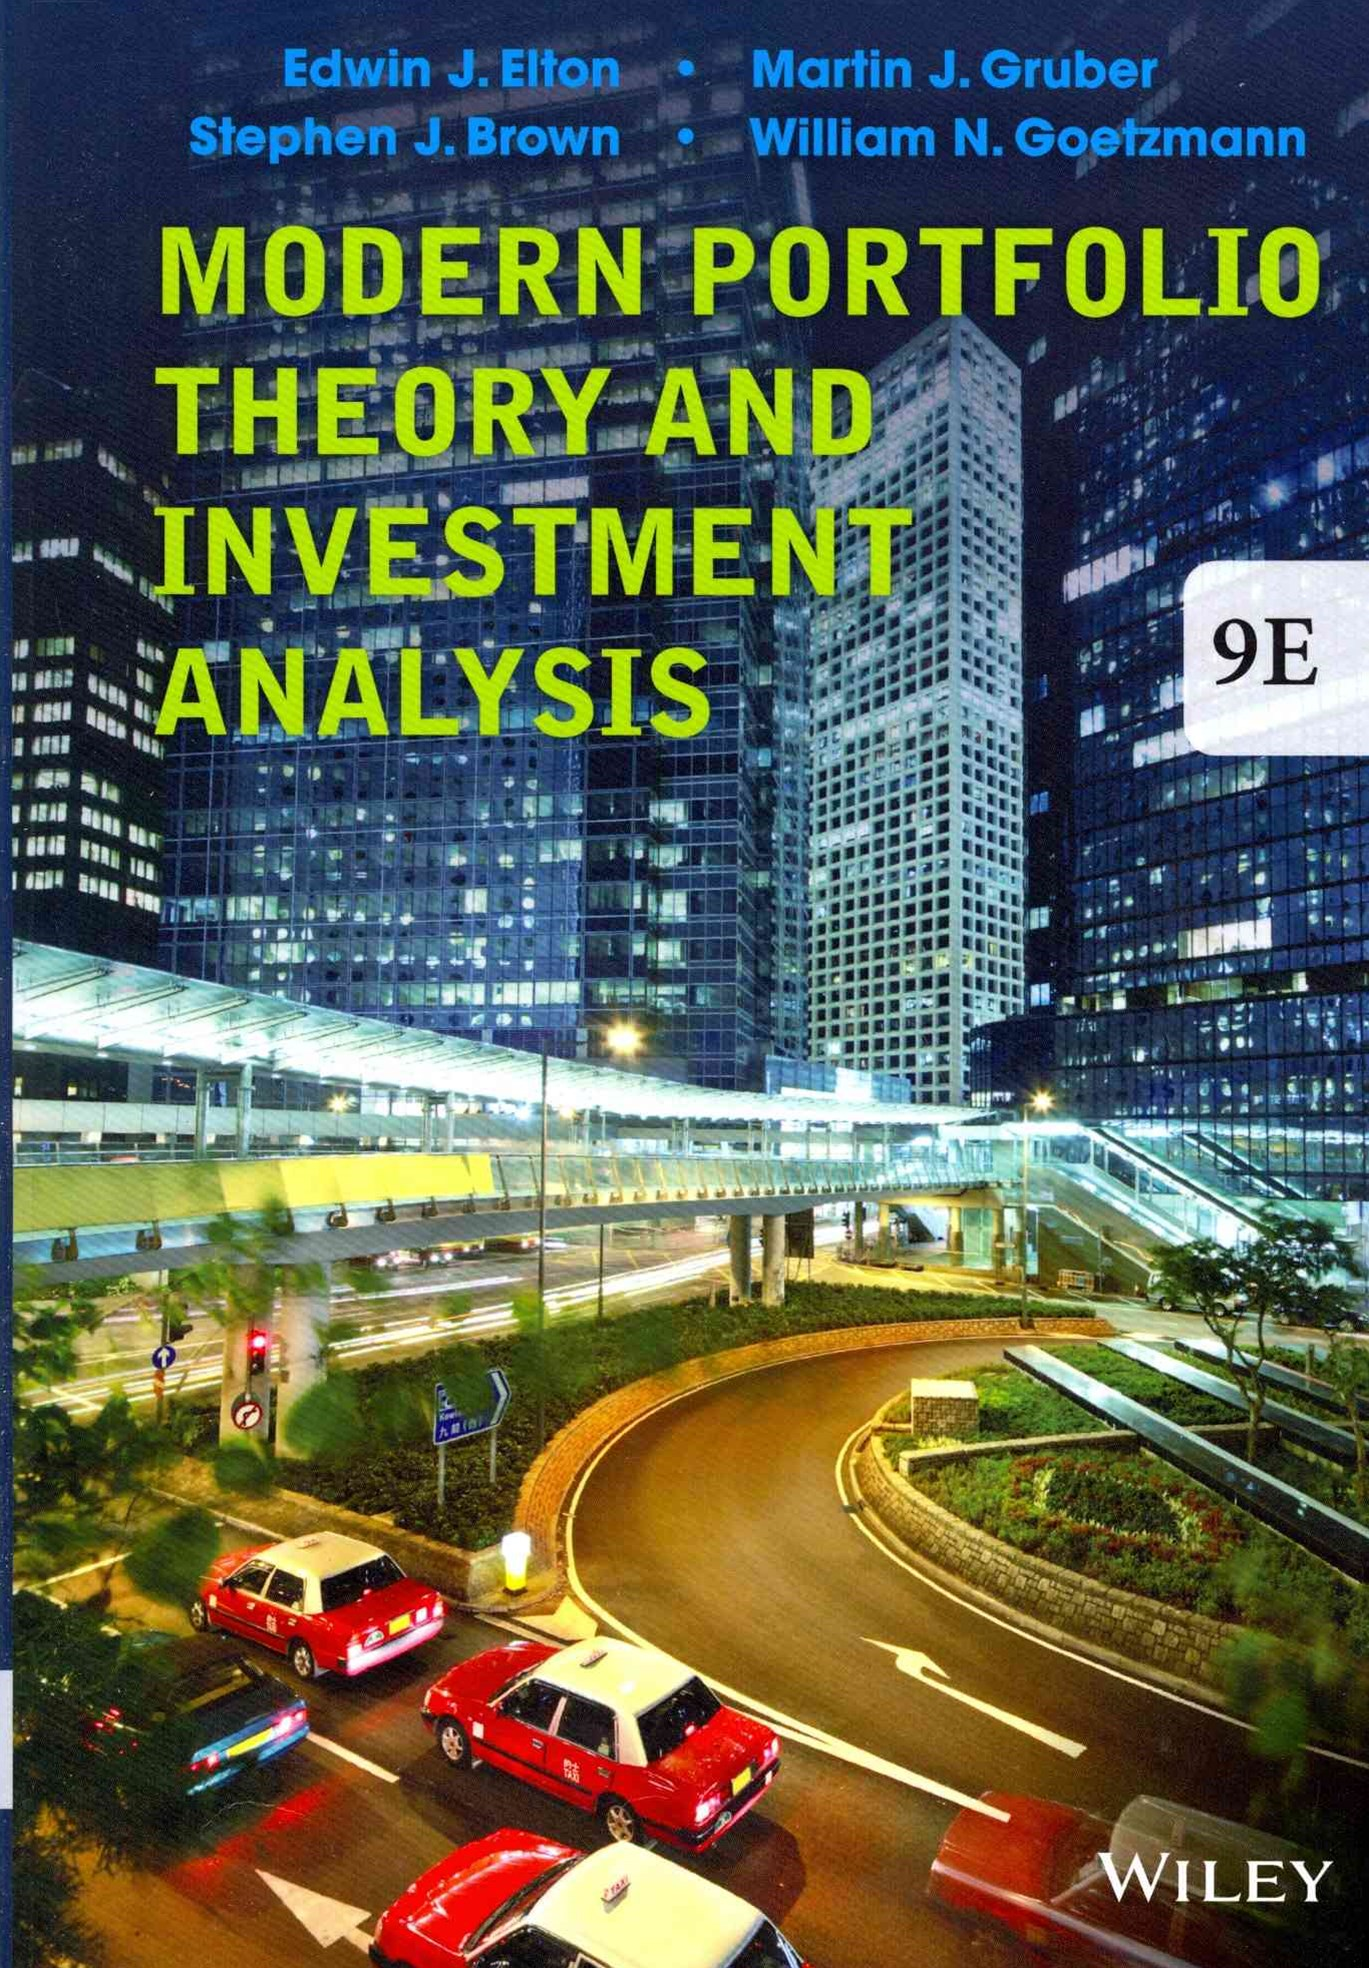 Modern Portfolio Theory and Investment Analysis 9E